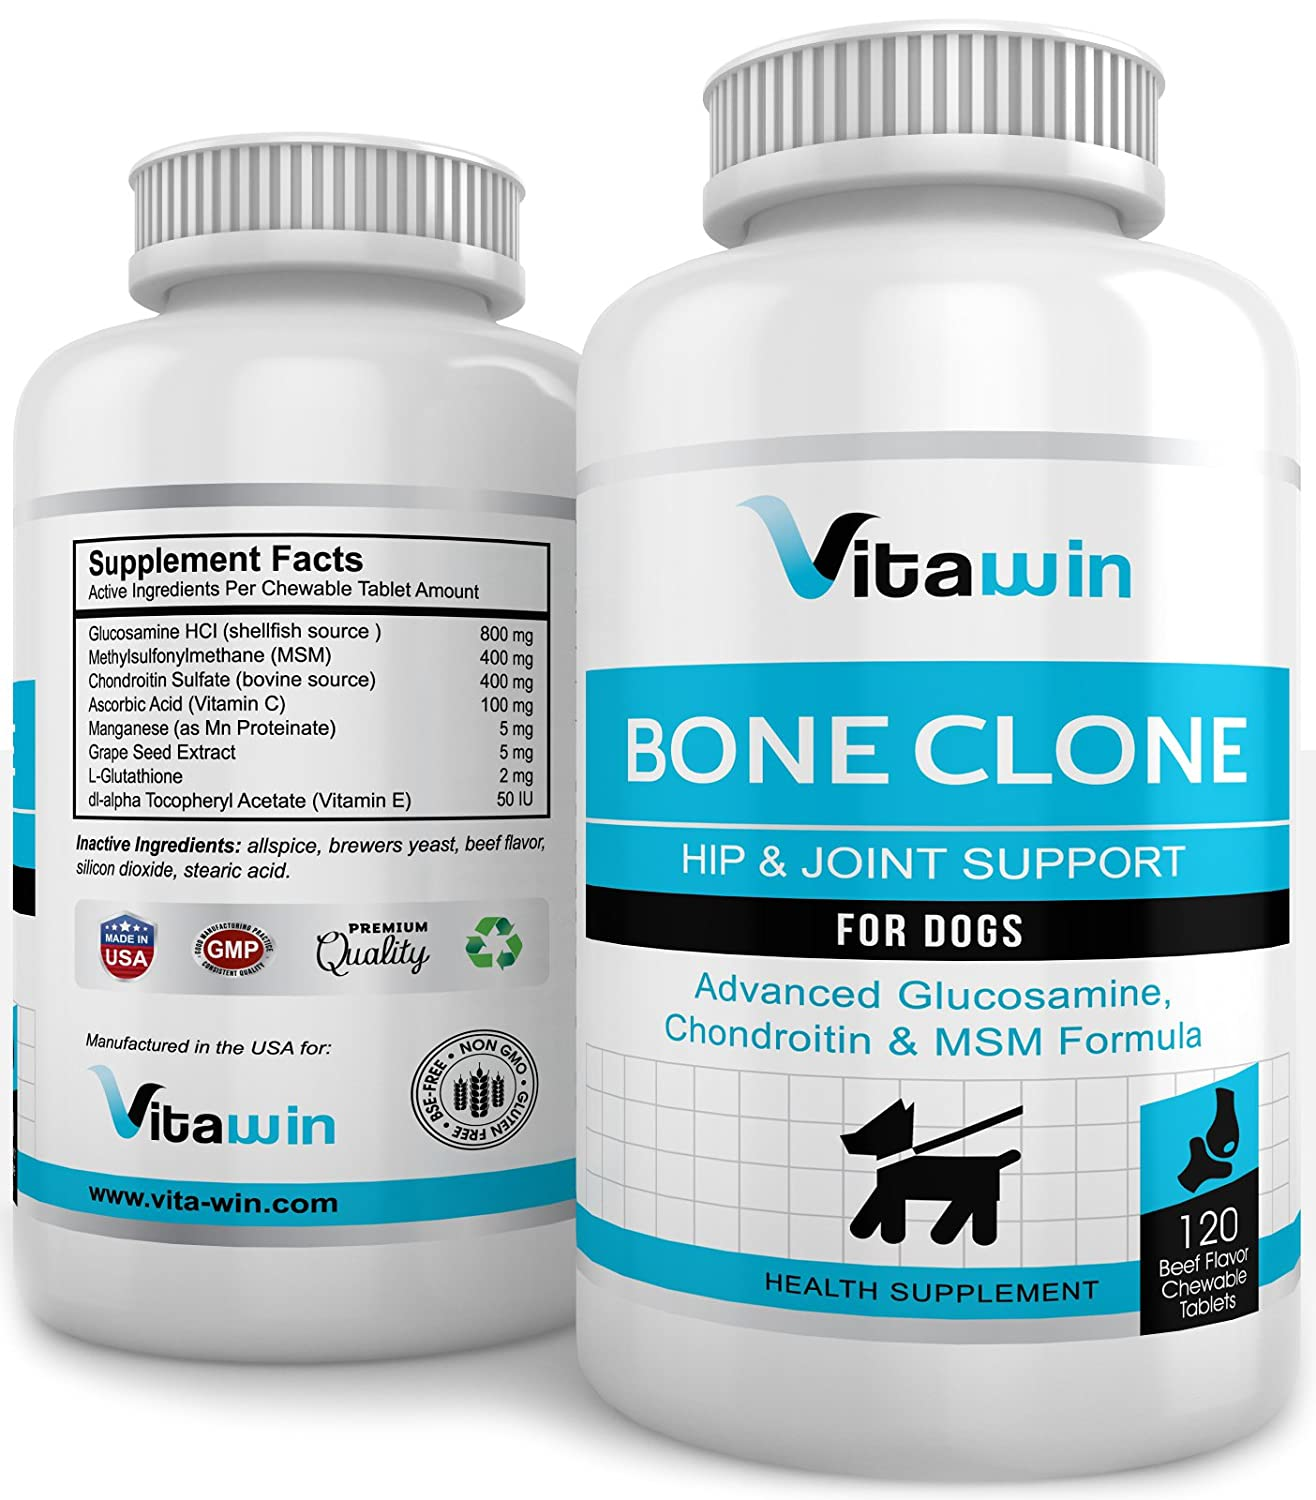 Advanced Glucosamine for Dogs 800MG 120 Chew Tabs for Hips & Joints Plus Chondroitin 400mg + MSM 400mg Best Value per tablet on Amazon Vet Approved Double Strength Formula Maximum Mobility Pain Relief Nutritional Dog Supplement